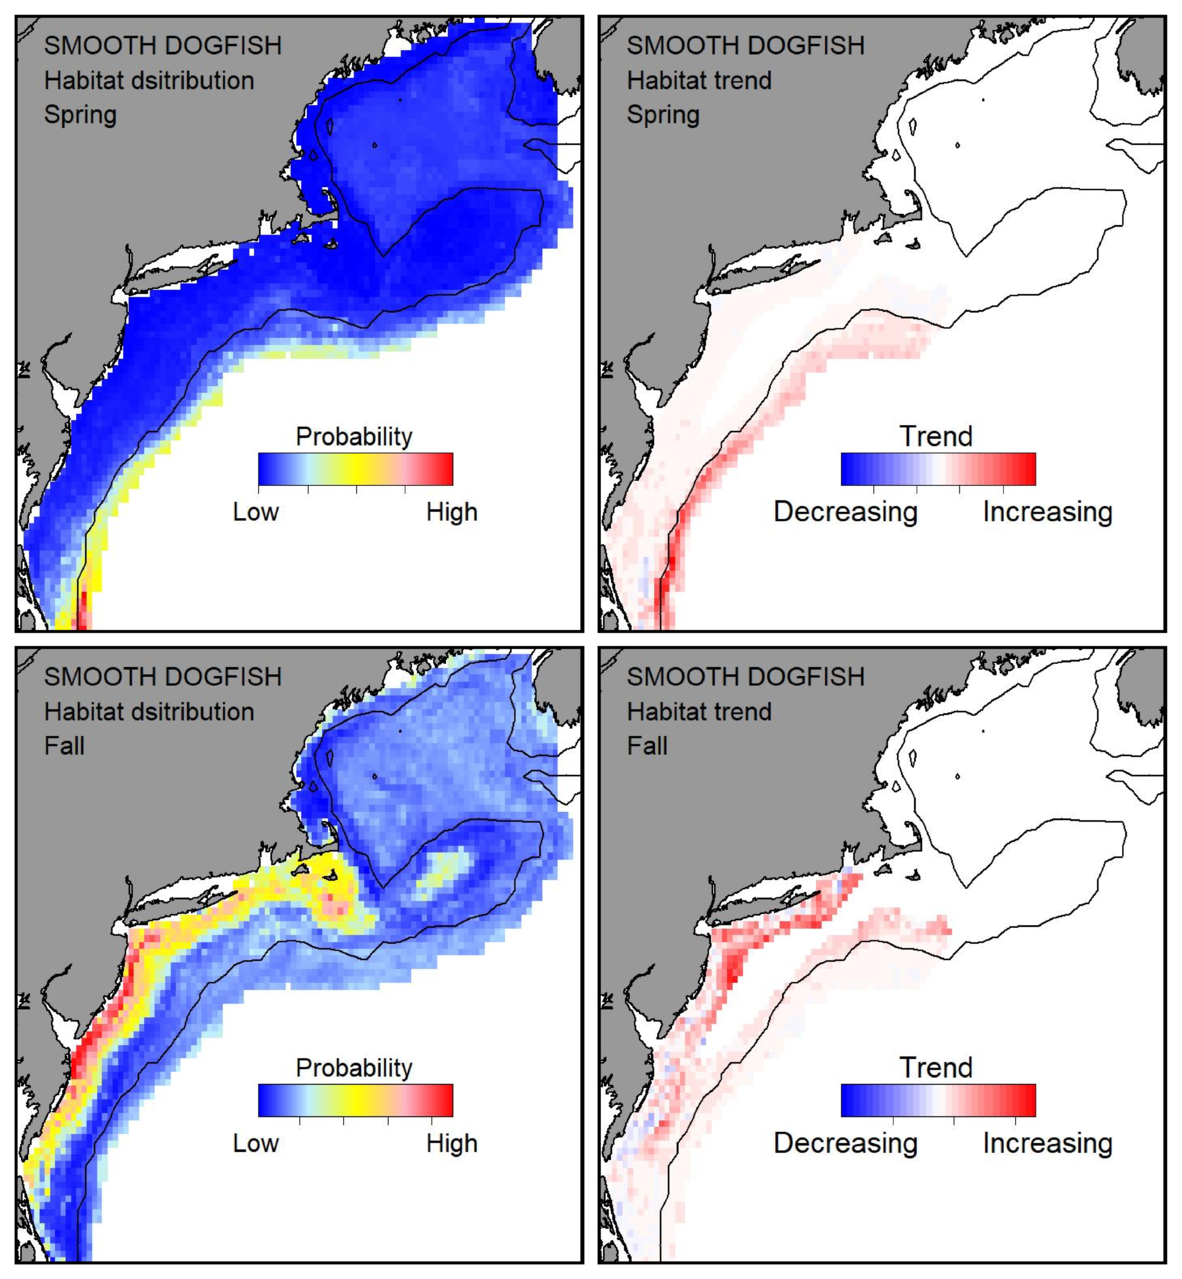 Top row: Probable habitat distribution for smooth dogfish showing the highest concentration and increasing trend in the Gulf of Maine during the spring. Bottom row: Probable habitat distribution for smooth dogfish showing the highest concentration and increasing trend in the Gulf of Maine during the fall.